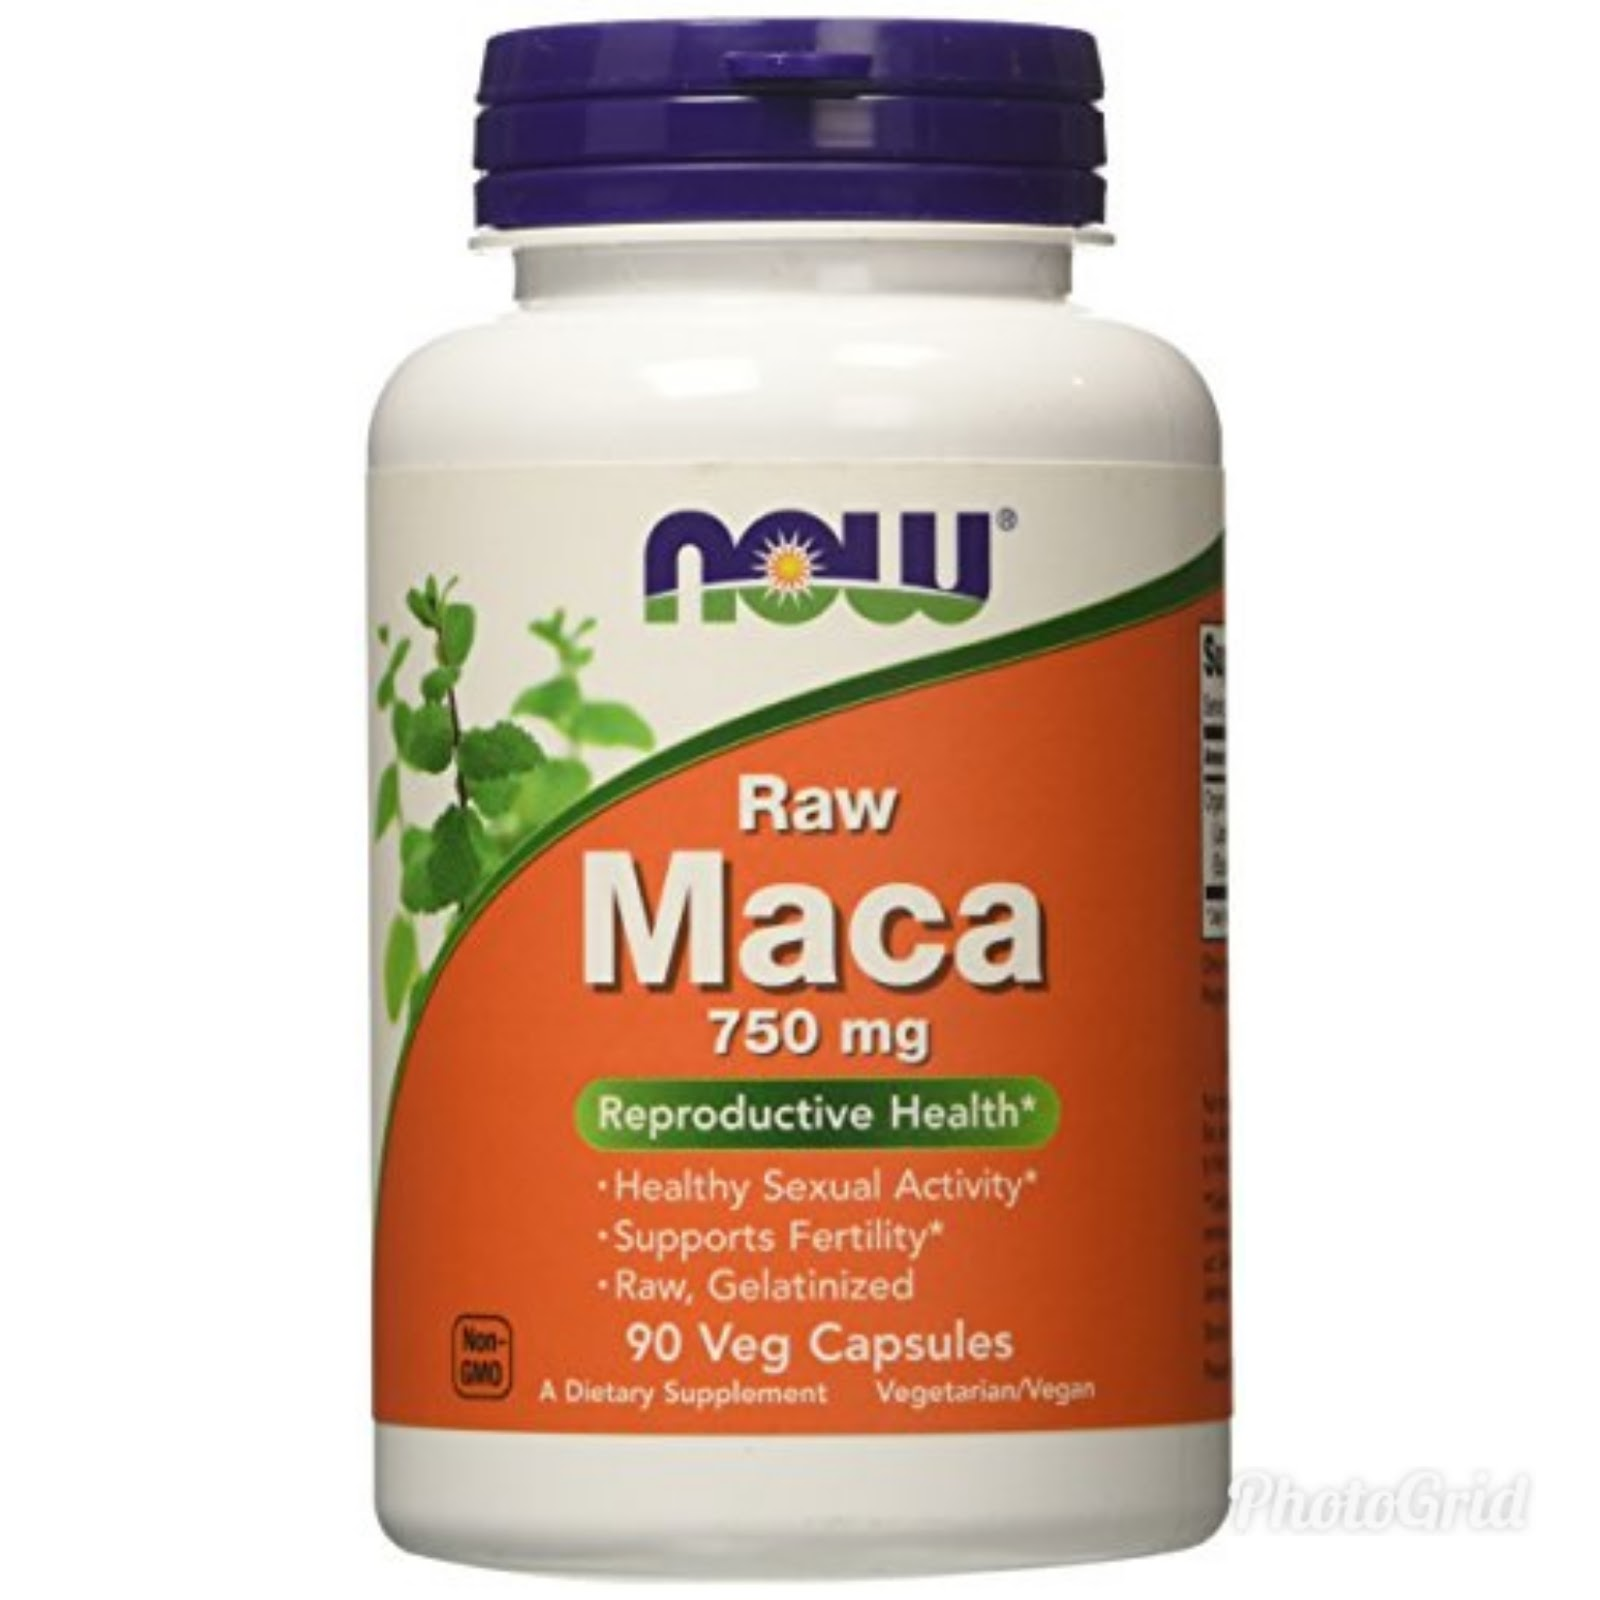 maca capsules benefits, maca capsules weight gain, maca capsules uk, maca capsules dosage, maca capsules australia, maca capsules review, maca capsules nz, maca capsules vs powder, maca capsules malaysia, maca capsules for fertility, maca capsules,, maca capsules side effects, maca capsules amazon, maca capsules amazon uk, maca capsules and fertility, maca capsules acne, maca capsules and pregnancy, aca capsules and fibroids, maca capsules and ovulation, maca capsules au, maca andina capsules, maca capsules boots, maca capsules bioglan, maca supplement benefits, maca vitamin b12, maca supplement bodybuilding, maca vitamin b maca vitamin b6, maca pills before and after, maca supplement breastfeeding, maca b vitamins, maca capsules cvs maca capsules canada, maca capsules chemist warehouse, maca capsules costco, maca supplement canada, maca supplement chemist warehouse, maca vitamin c, maca supplement cvs, maca vitamin content, maca supplement costco, maca capsules dosage for menopause, maca capsules dischem, maca capsules diarrhea, maca capsule dosage for fertility, maca capsule dose, maca supplement dosage, maca vitamin d, maca pill dosage, maca supplement during pregnancy, maca capsules ebay, maca capsules effects, maca extract capsules, maca extract capsules in india, maca extract capsules benefits, maca enhancer capsules, maca energy capsules, maca extract capsules in pakistan, maca enhancer capsules in pakistan, maca extract capsules in hyderabad, maca capsules for menopause, maca capsules for breast enlargement, maca capsules for acne, maca capsules for sale, maca capsules forum maca capsules for weight gain, maca capsules for pcos, maca capsules for weight loss, maca capsules for energy maca capsules gnc, maca gold capsules, maca gold capsules 550mg, maca gelatinized capsules, maca gold capsules review, maca gel capsules maca gold capsules australia maca root gelatinized capsules black maca gelatinized capsules maca capsules holland and barrett maca capsules health benefits maca supplement hormonal imbalance maca supplement hong kong maca supplement health benefits maca root capsules holland and barrett maca herbal supplement benefits maca herb supplement maca herbal supplement uses himalaya maca capsules maca capsules ireland maca capsules in dubai maca capsules in india maca capsules iherb maca capsules in south africa maca capsules in kenya maca capsules in egypt maca capsules in sri lanka maca capsules images maca in capsules maca supplement japan maca capsules kruidvat maca capsules kopen maca vitamin k maca root capsules kopen maca-vitamin kapseln maca supplement kopen red maca capsules uk black maca capsules uk maca capsules libido maca supplement libido maca lepidium capsule maca capsules weight loss maca magic capsules maca supplement malaysia maca supplement menopause maca vitamins minerals maca man supplements maca magic supplement multivitamin with maca maca 1000 mg capsules maca 500 mg capsules maca capsules now nature's way maca capsules maca navitas capsules maca supplement nz maca supplement now maca capsules in nigeria maca natural supplement navitas maca capsules reviews now maca capsules reviews maca capsules or powder maca capsules organic maca capsules online maca capsules organic pharmacy maca pill or powder maca pill or powder form maca supplements on amazon maca root capsules or powder buy maca capsules online maca capsules philippines maca capsules pcos maca capsules price maca capsule plafar maca powder capsules maca power capsules maca powder capsules benefits maca power capsules review maca powder capsules dosage maca powder capsules reviews maca capsules in qatar maca root capsules maca root capsules benefits maca root capsules weight gain maca root capsules for fertility maca root capsules side effects maca root capsules uk maca root capsules dosage maca root capsules vs powder maca root capsules for a bigger booty red maca capsules red maca capsules benefits red maca capsules australia red maca capsules canada red maca capsules walmart raw organic red maca capsules gelatinized red maca capsules organic red maca capsules uk raw red maca capsules uk maca capsules south africa maca capsules singapore maca capsule secom maca vitamin shoppe maca vitamin side effects maca supplements south africa maca supplement shoppers drug mart maca supplement safe maca supplement safety maca capsules ttc maca capsules tesco maca supplement testosterone maca supplement thyroid maca supplement toronto maca supplement ttc maca supplement to get pregnant best maca capsules to buy maca the vitamin shoppe maca the pill maca capsules uses maca supplement uses maca vitamins uk maca pill uses organic maca capsules uk gelatinized maca capsules uk best maca capsules uk maca capsules vruchtbaarheid maca capsules voor mannen maca vegetarian capsules maca vegetarian capsules uk maca pill vs powder maca supplement vega maca vitex supplement maca root vegetarian capsules vega maca capsules reviews maca capsules walmart maca capsules whole foods maca capsules wikipedia maca capsules wholesale maca capsules what do they do maca capsules walgreens maca vitamin world maca supplement wiki maca zinc supplement zwarte maca capsules maca capsules zwangerschap maca 100 capsules maca root capsules 1000mg maca 500mg 100 capsules maca 2 capsules maca 250 capsules maca root capsules 2500 mg maca 500mg 250 capsules maca magic 200 capsules now maca 250 capsules maca 300 mg capsules maca 3 capsules maca capsules 500mg maca supplement 500 mg maca pill 500mg maca root 500mg capsules maca gold 500 capsules holland & barrett maca capsules 500mg maca root extract 60 capsules maca (organic) 500mg 60 capsules guarana maca 60 capsules black maca capsules 60 capsules bottle maca 60 capsule maca 800mg capsules maca capsules 800mg